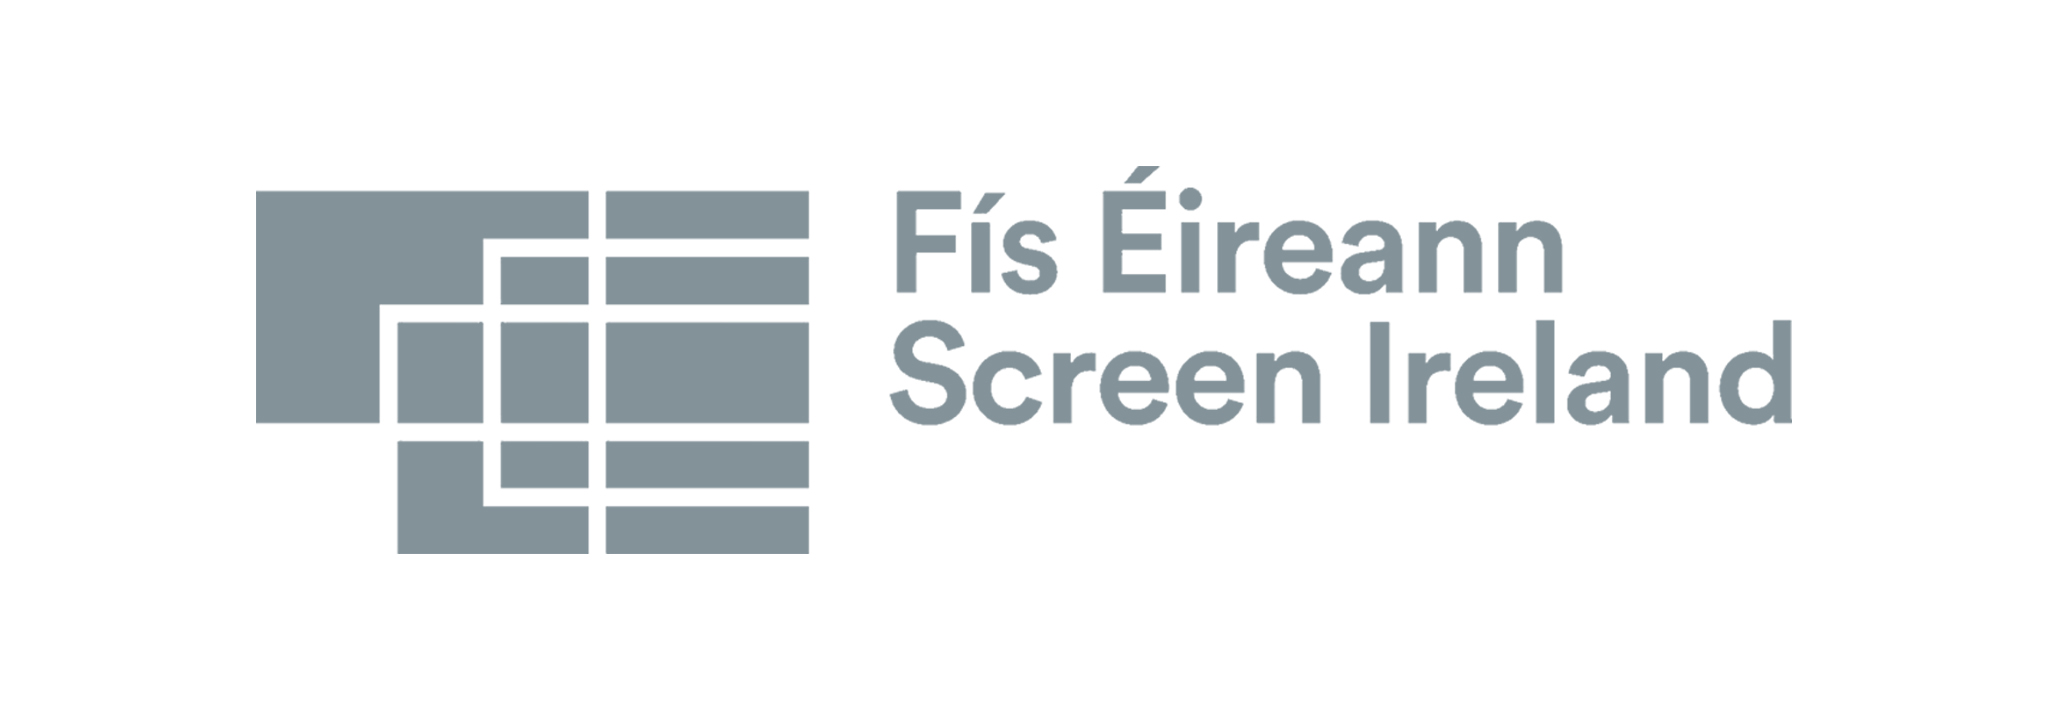 ScreenIreland_grey.jpg